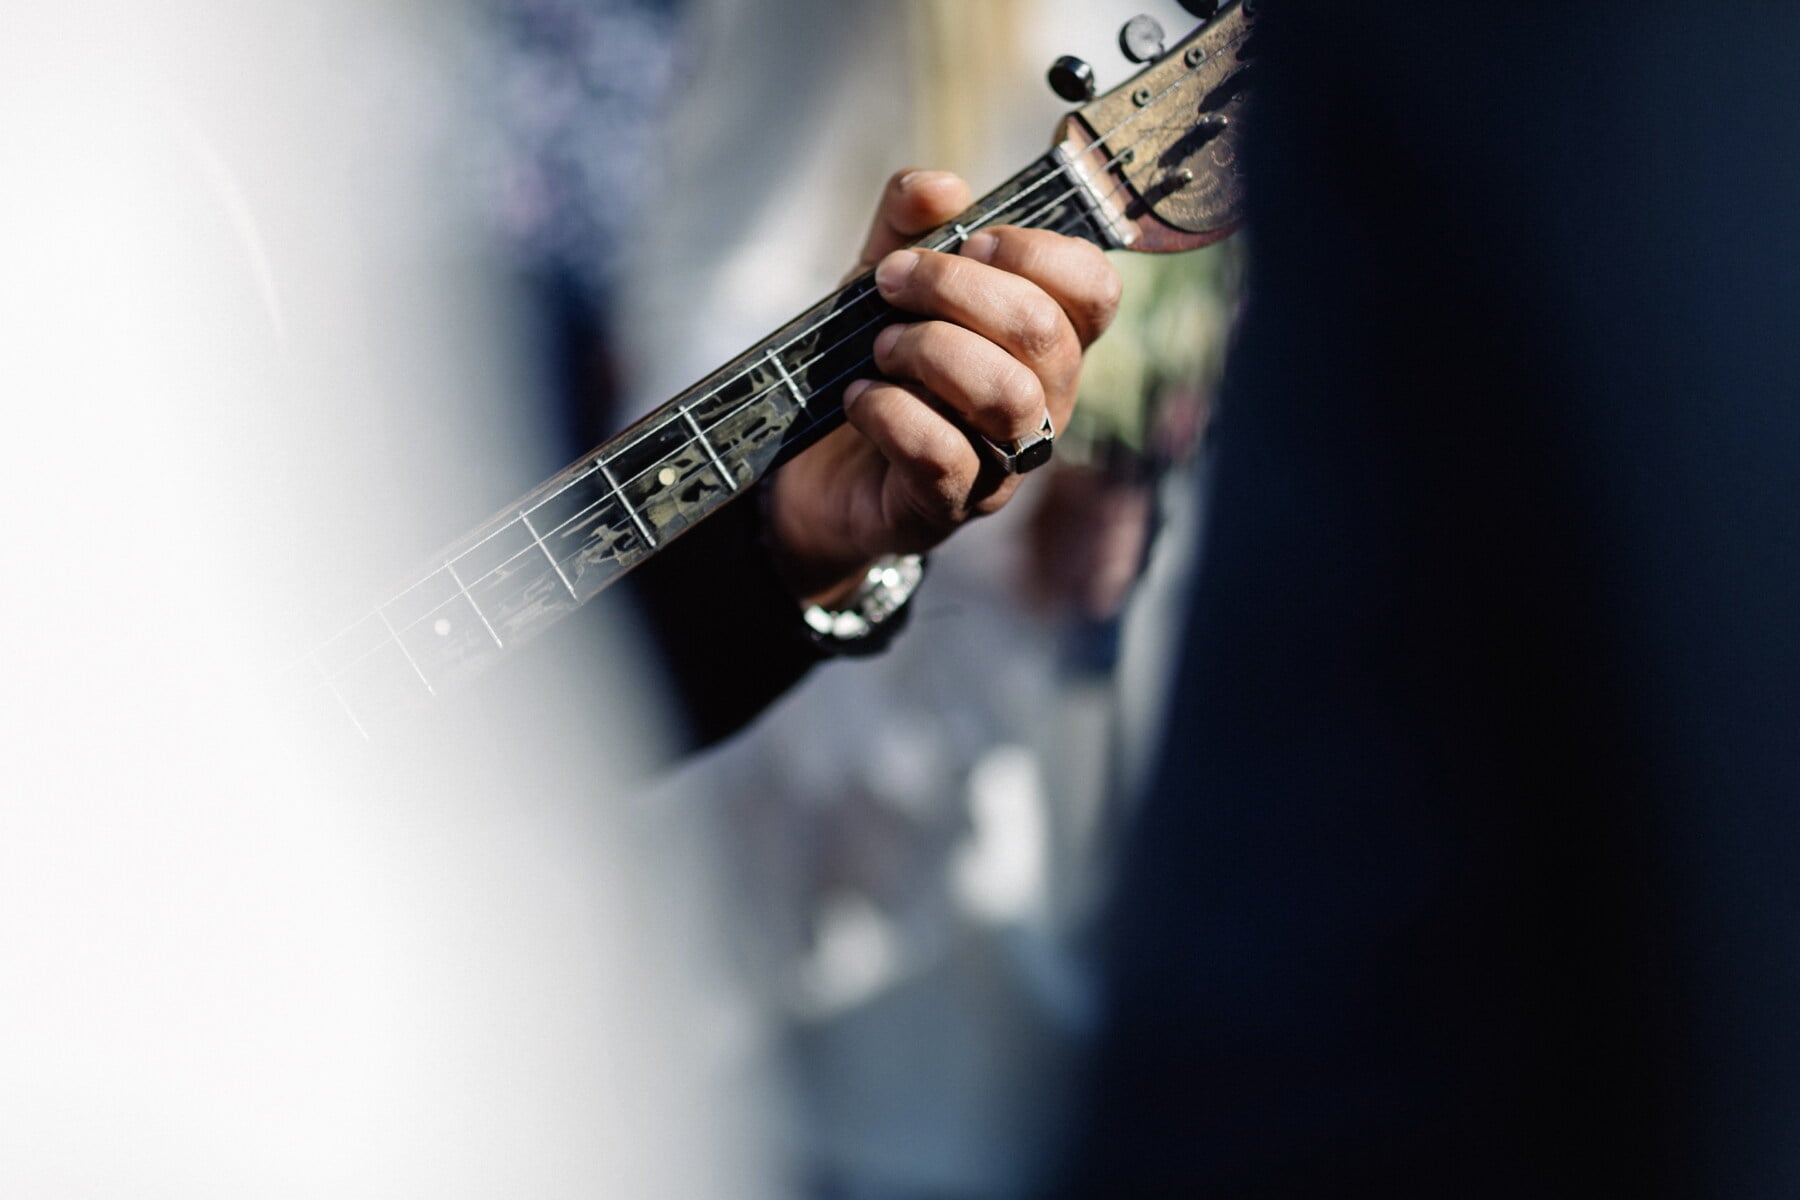 gypsy, guitarist, guitar, close-up, ring, hand, music, concert, musician, band